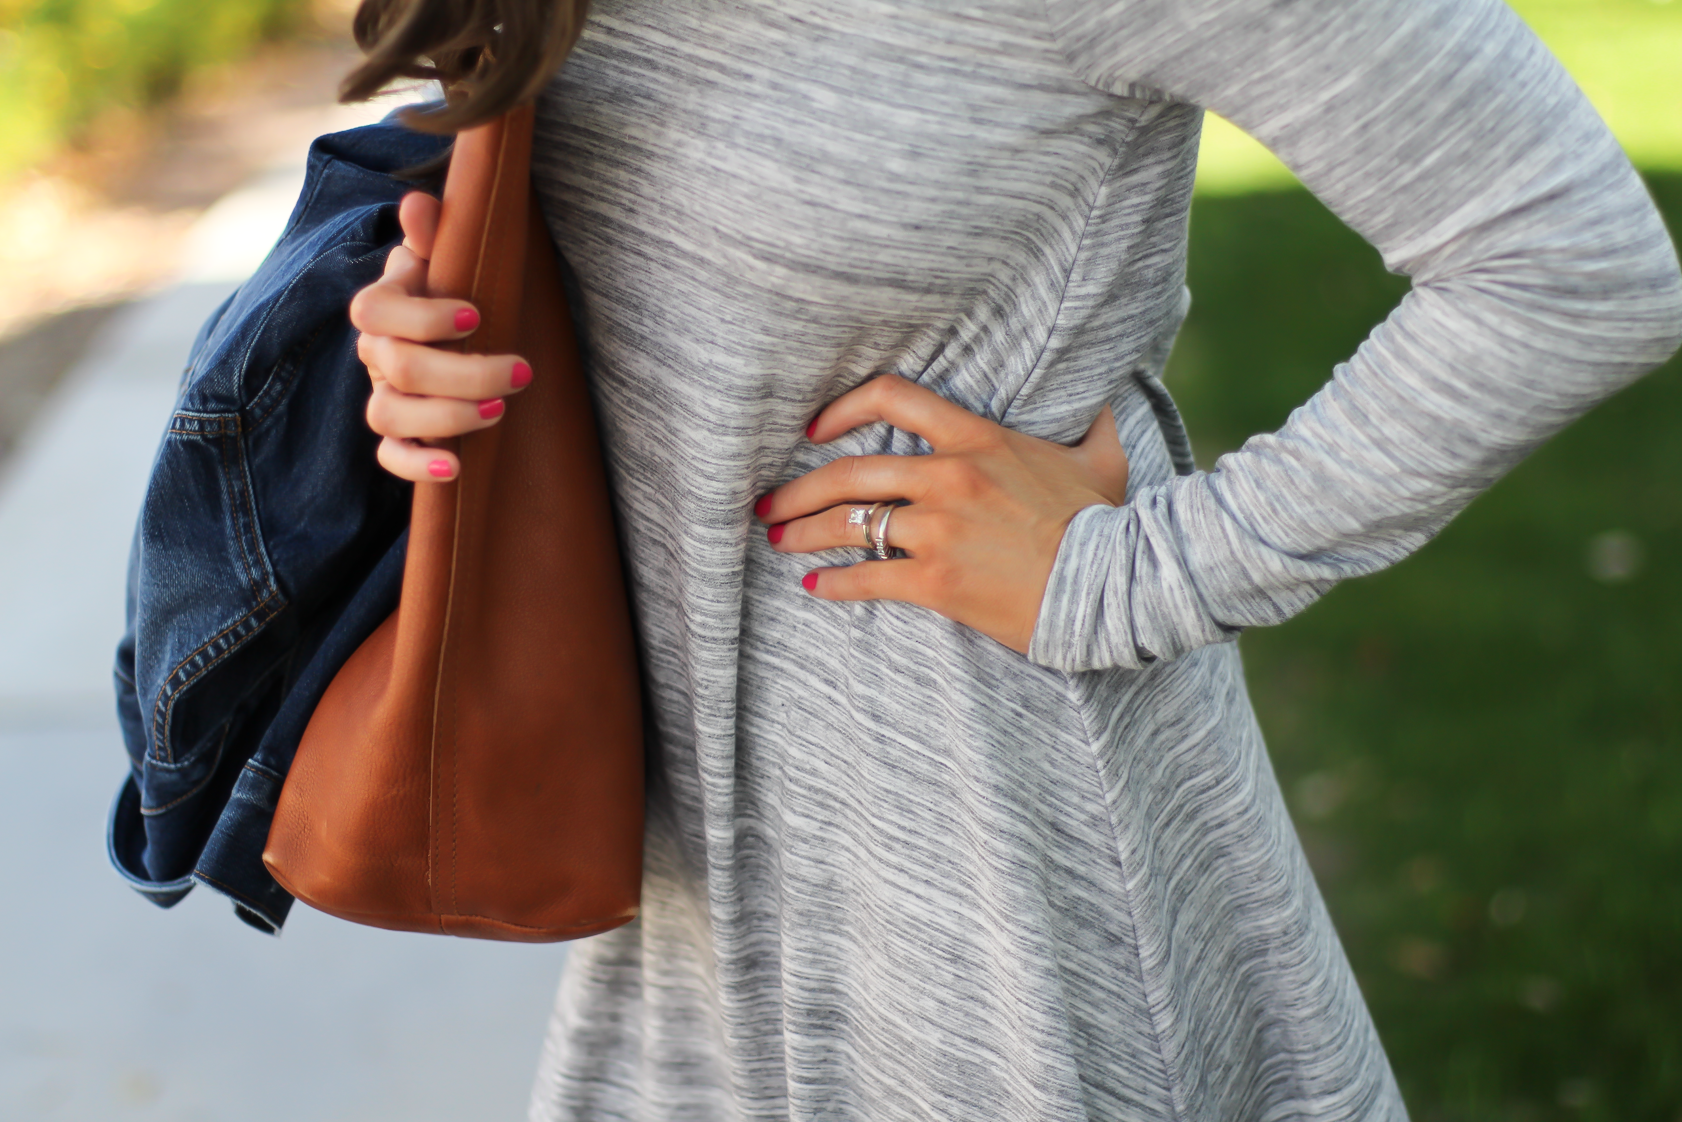 Heathered Grey Knit Swing Dress, Denim Jacket, Tan Leather Sandals, Tan Leather Tote, Loft, Lou and Grey, Banana Republic, Madewell, Tory Burch 17